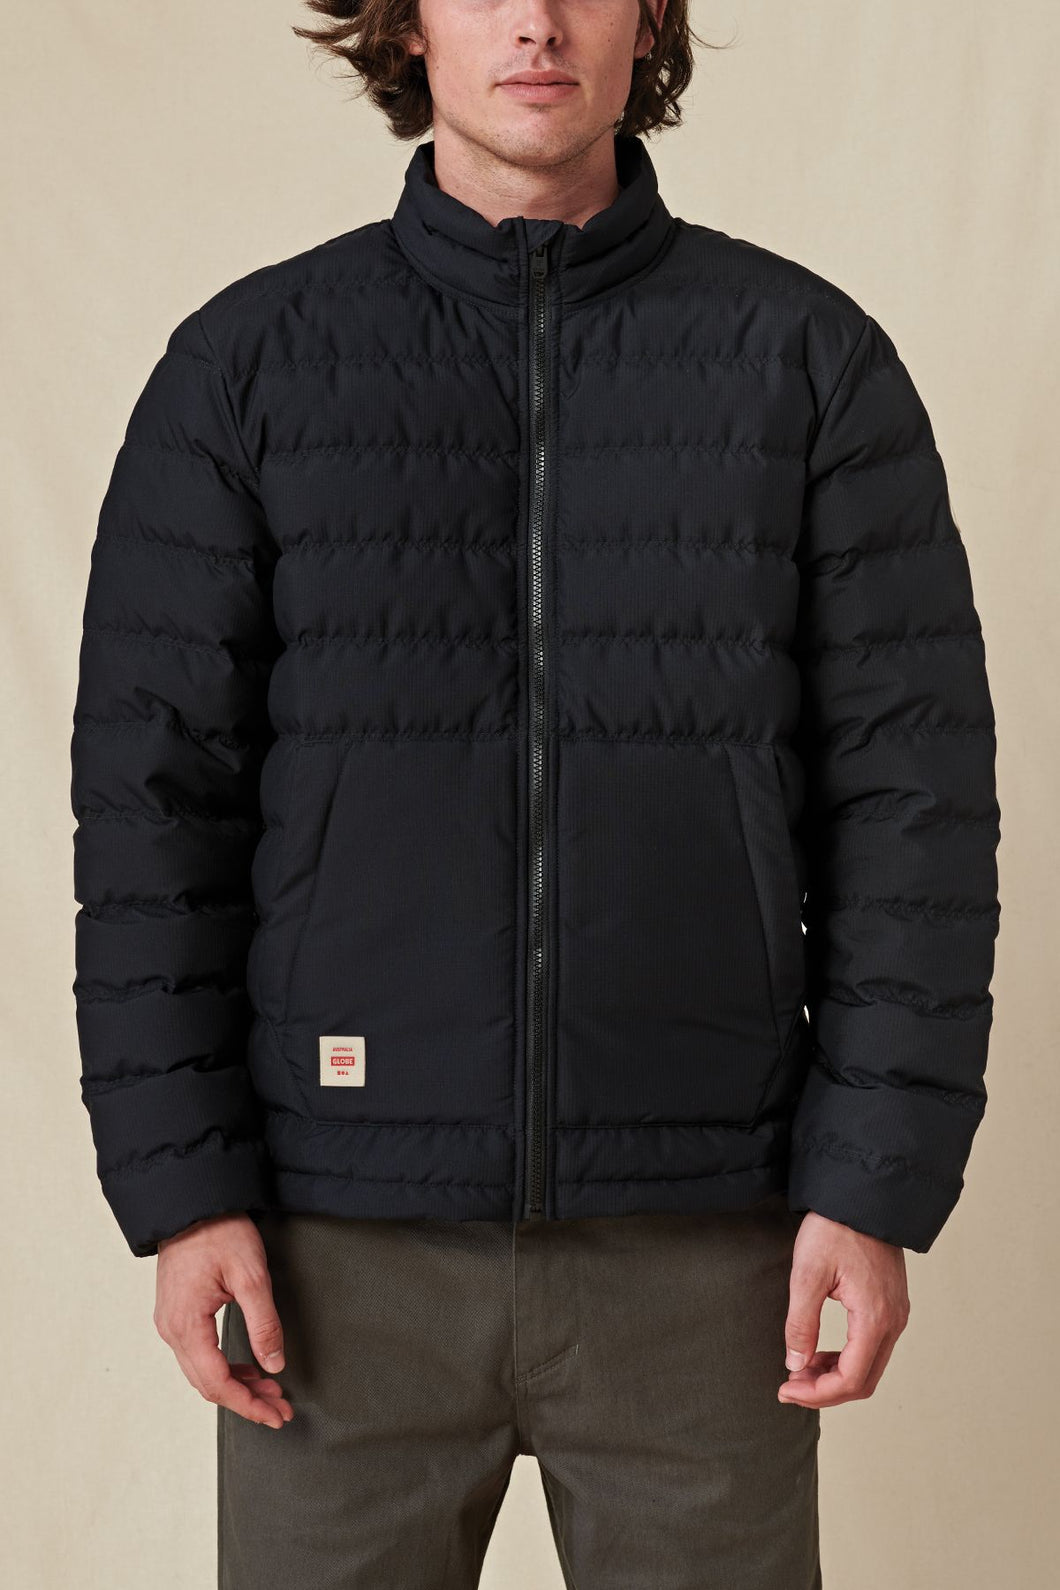 Jacket Globe - Prime Down Jacket in Black